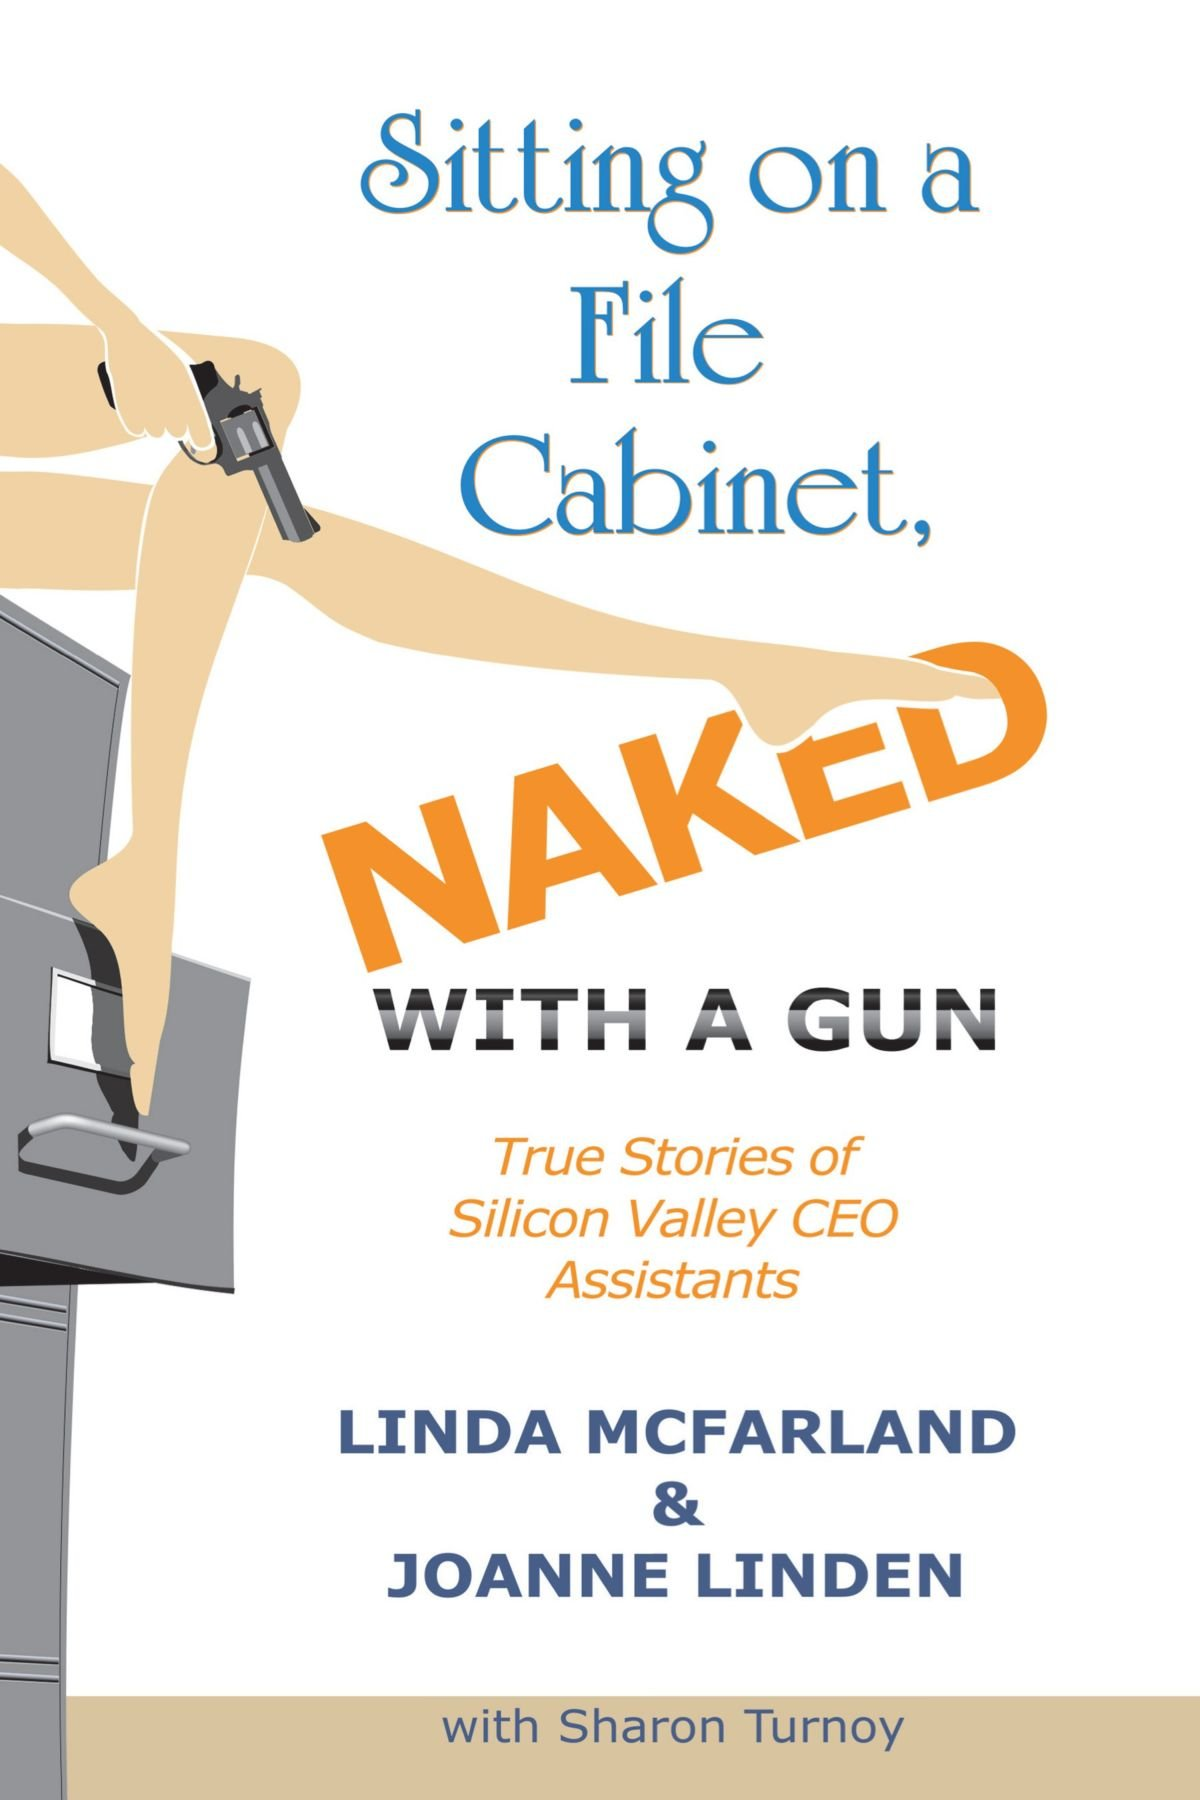 Sitting On A File Cabinet Naked With Gun True Stories Of Next Chapter Into The Silicon Valley Ceo Assistants Linda Mcfarland Joanne Linden Sharon Turnoy 9781449031596